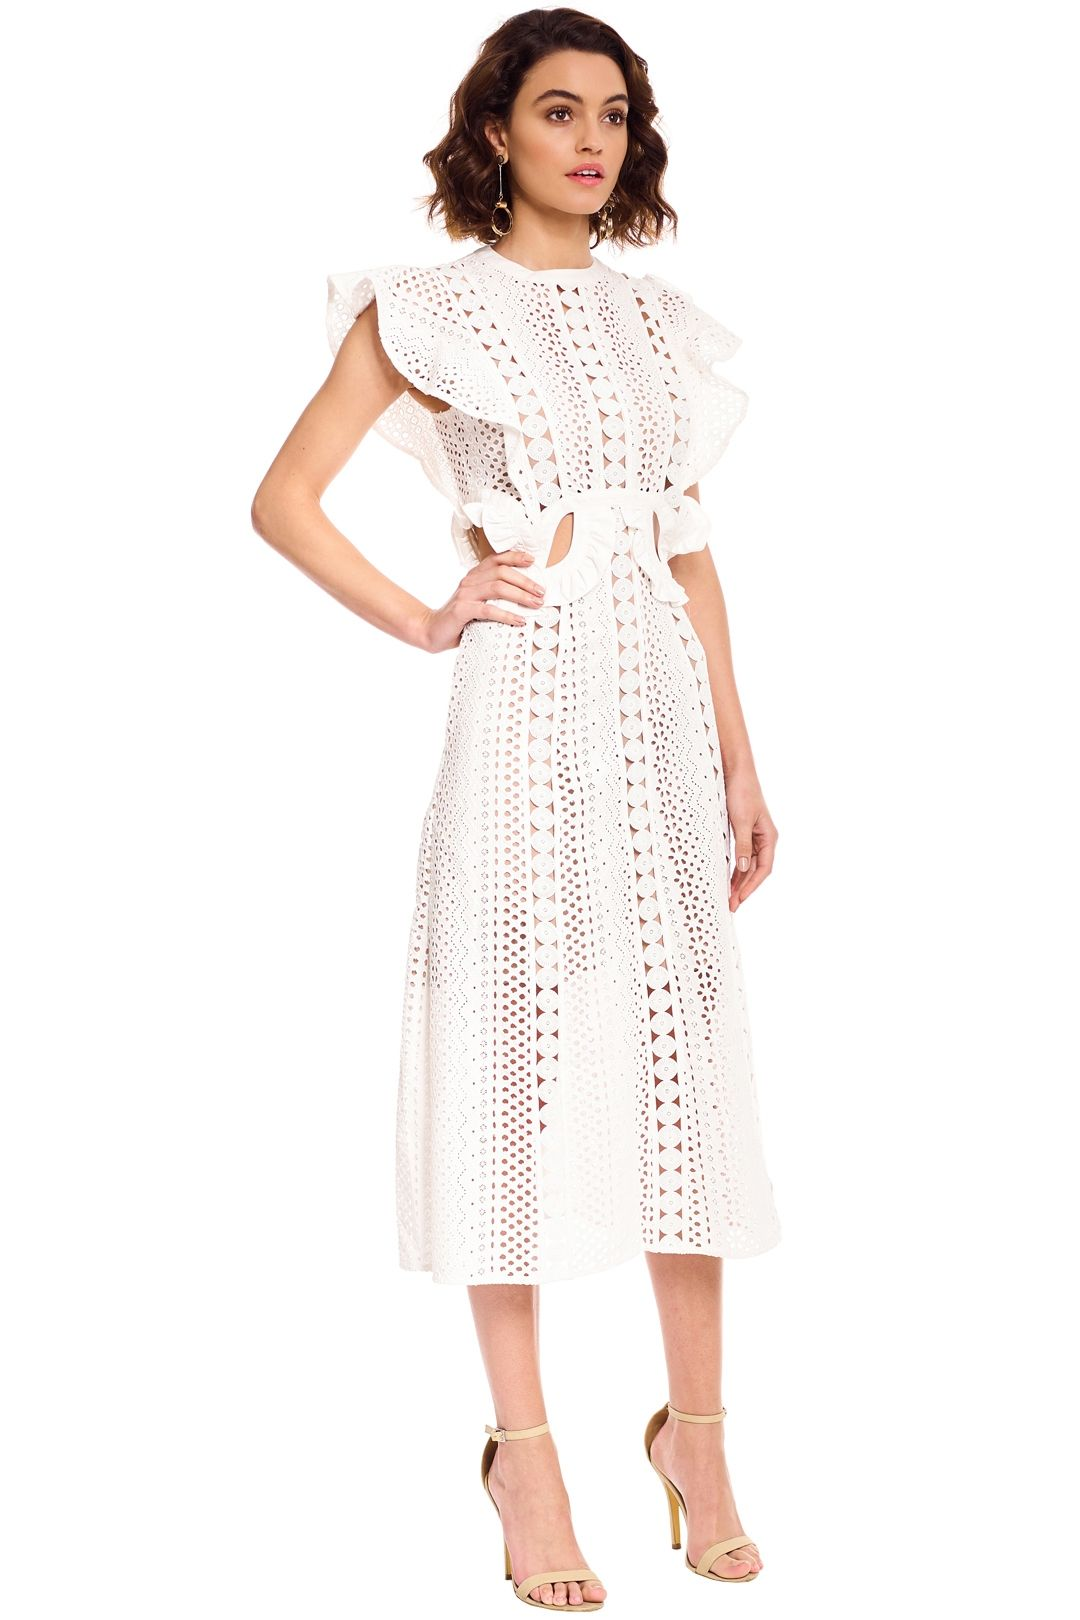 Self Portrait - Embroidered Cut-Out Midi Dress - White - Side